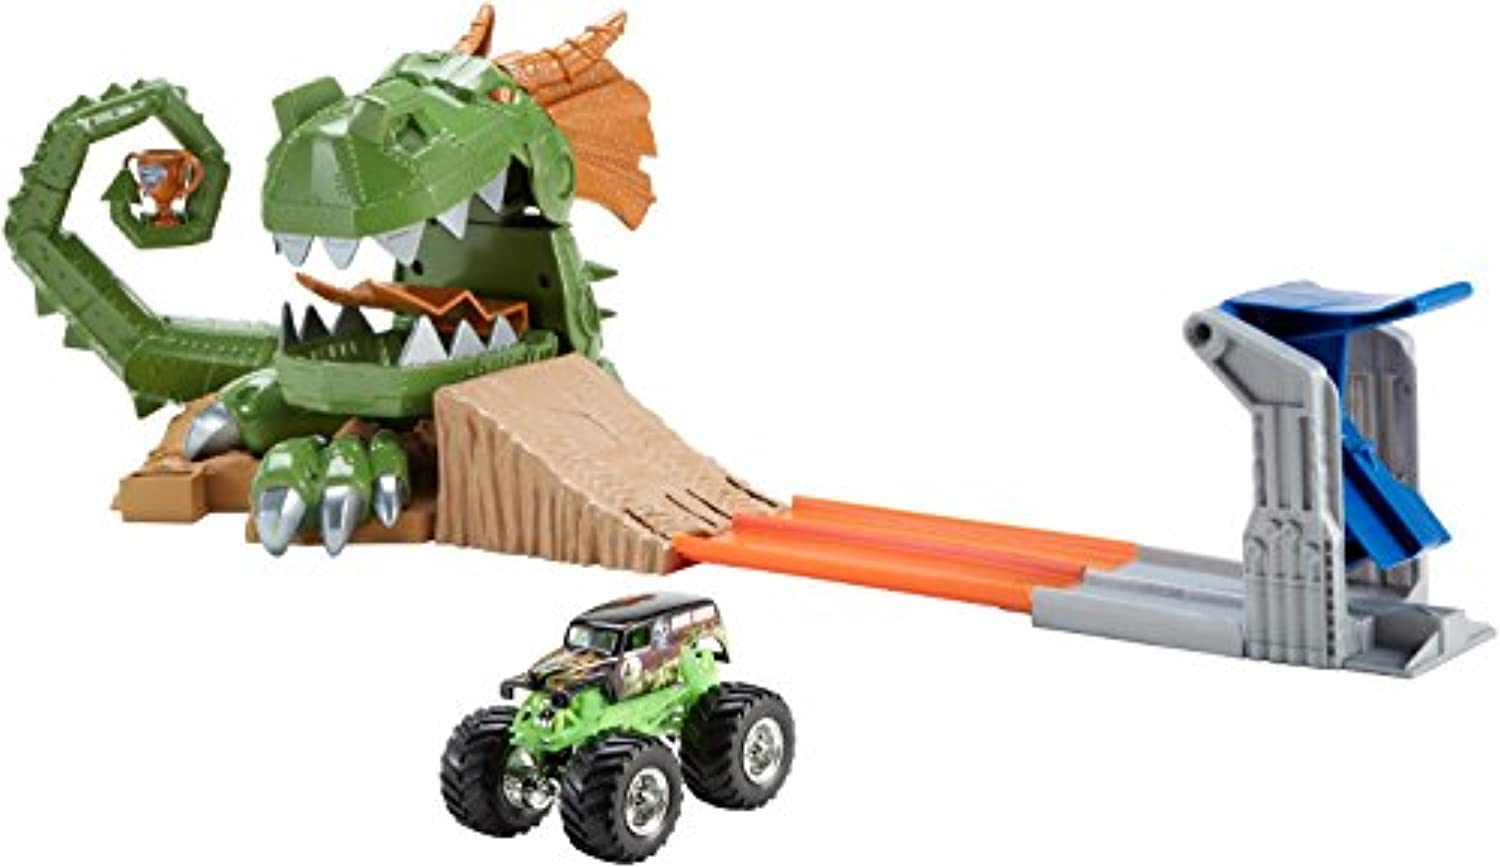 Hot Wheels Monster Jam Dragon Arena Attack Playset [並行輸入品]